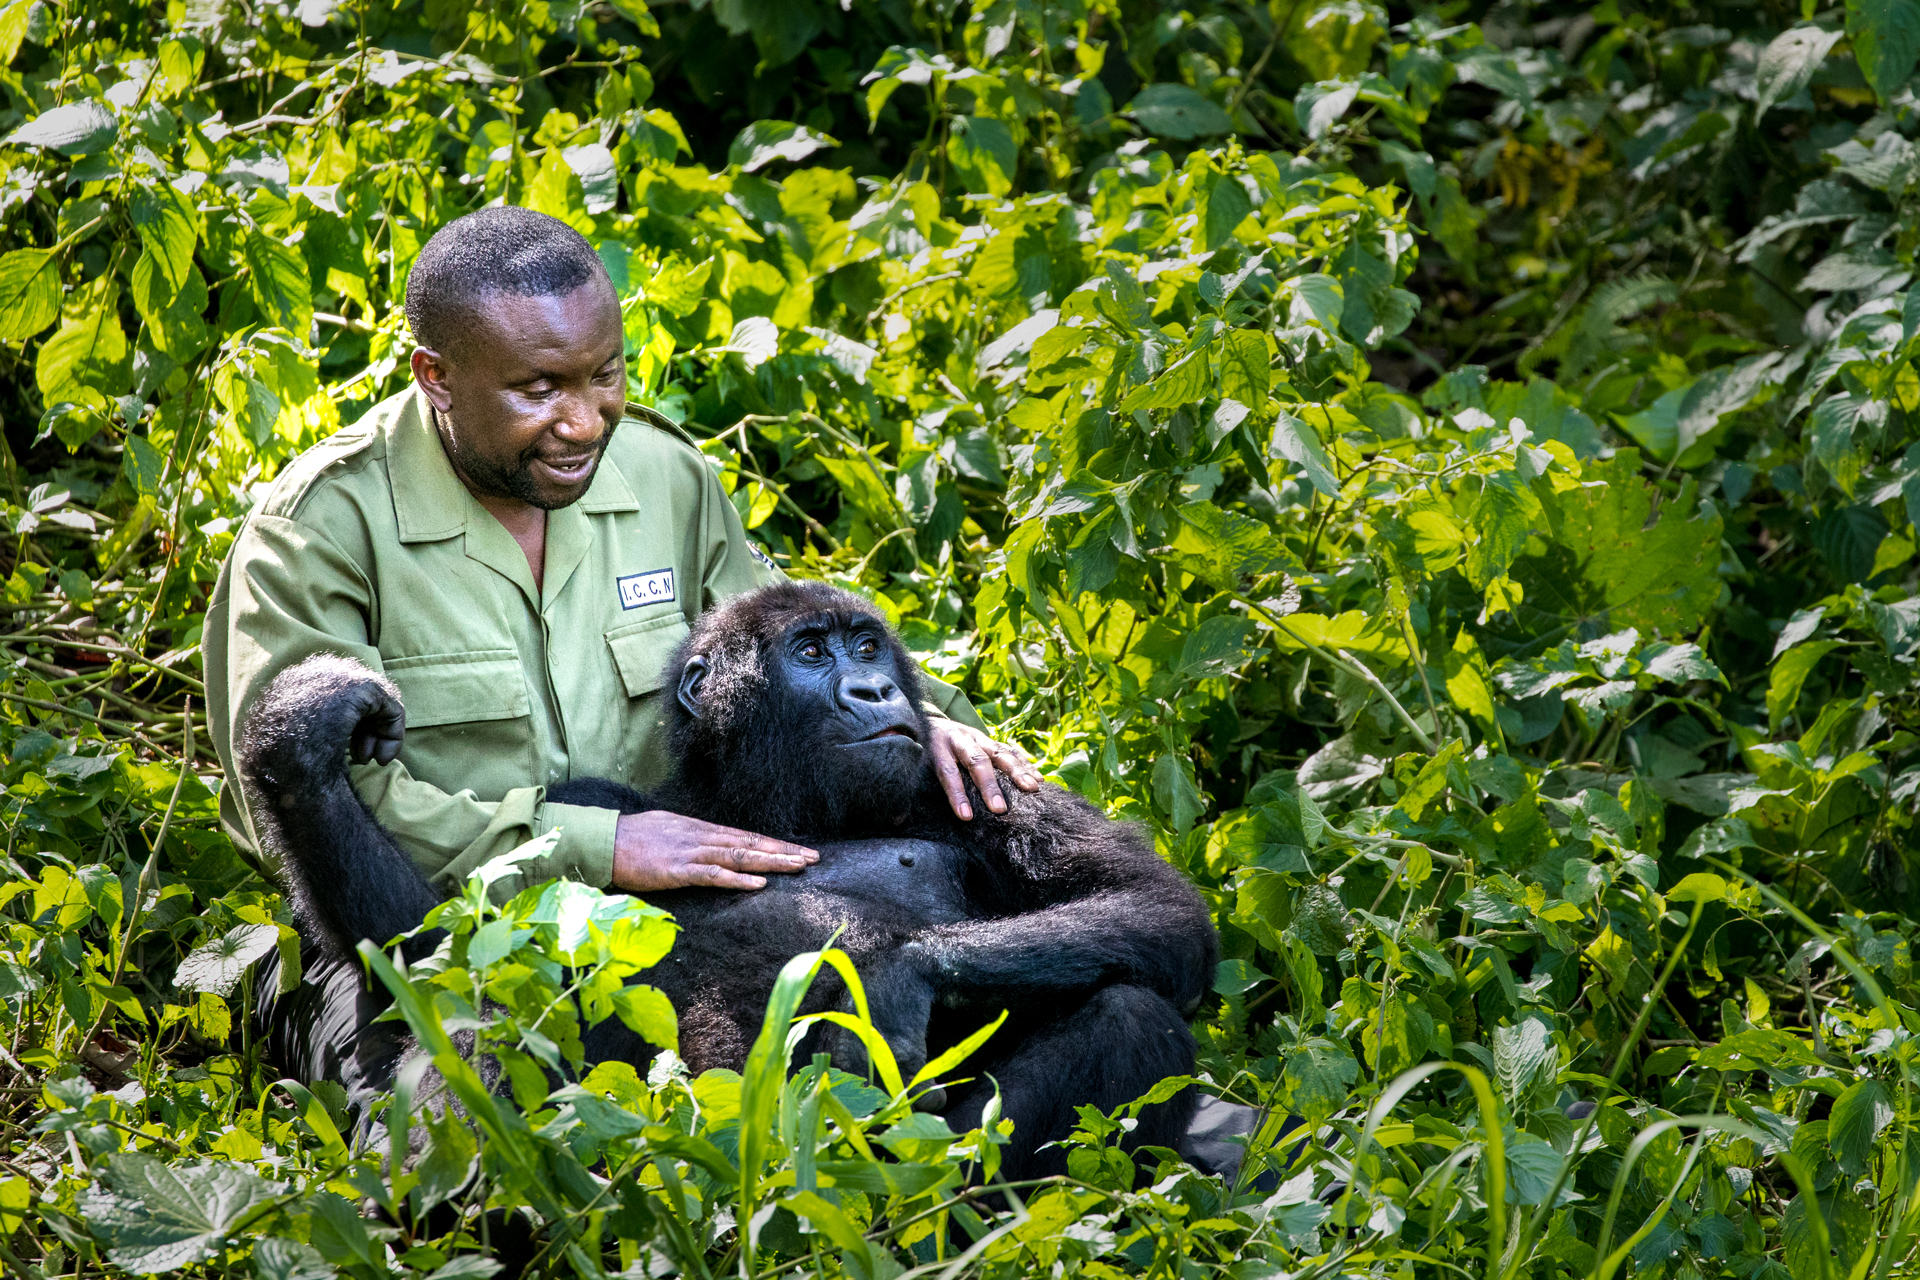 André Bauma, the manager of the Senkwekwe Center, plays with Ndakasi, a Grauer's gorilla